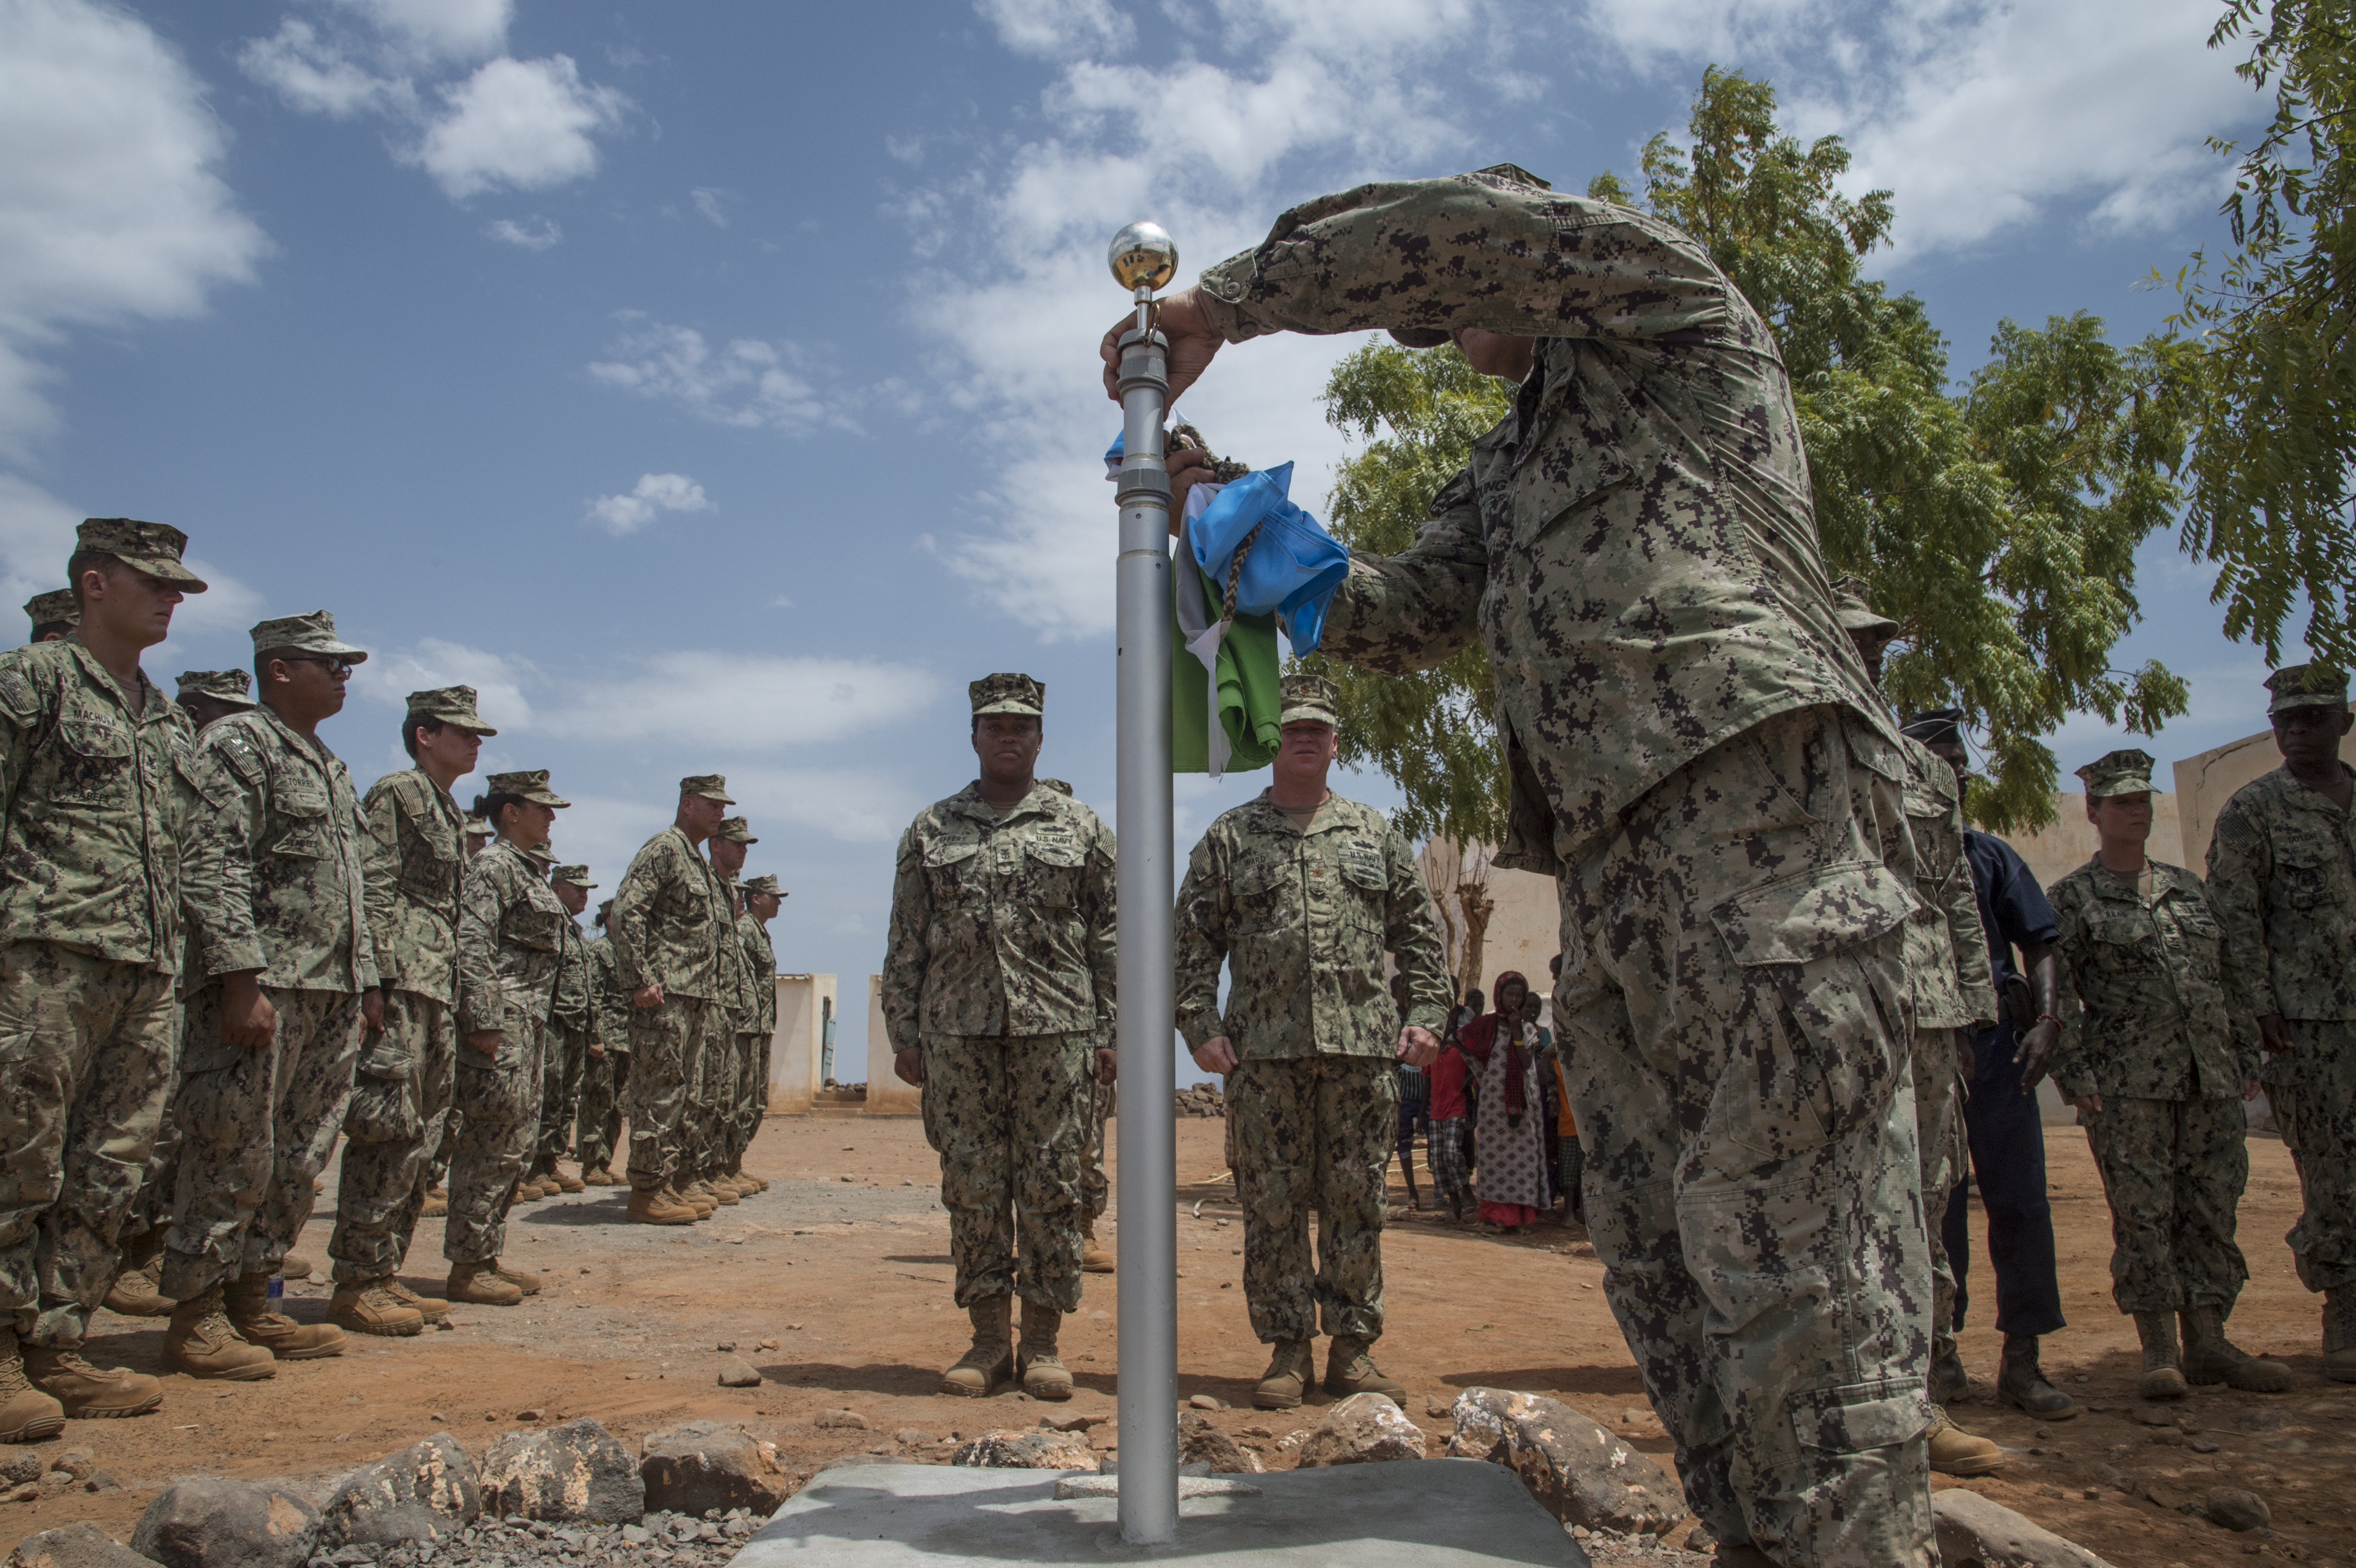 cjtf hoa seabees leave behind strong bonds with a djiboutian village